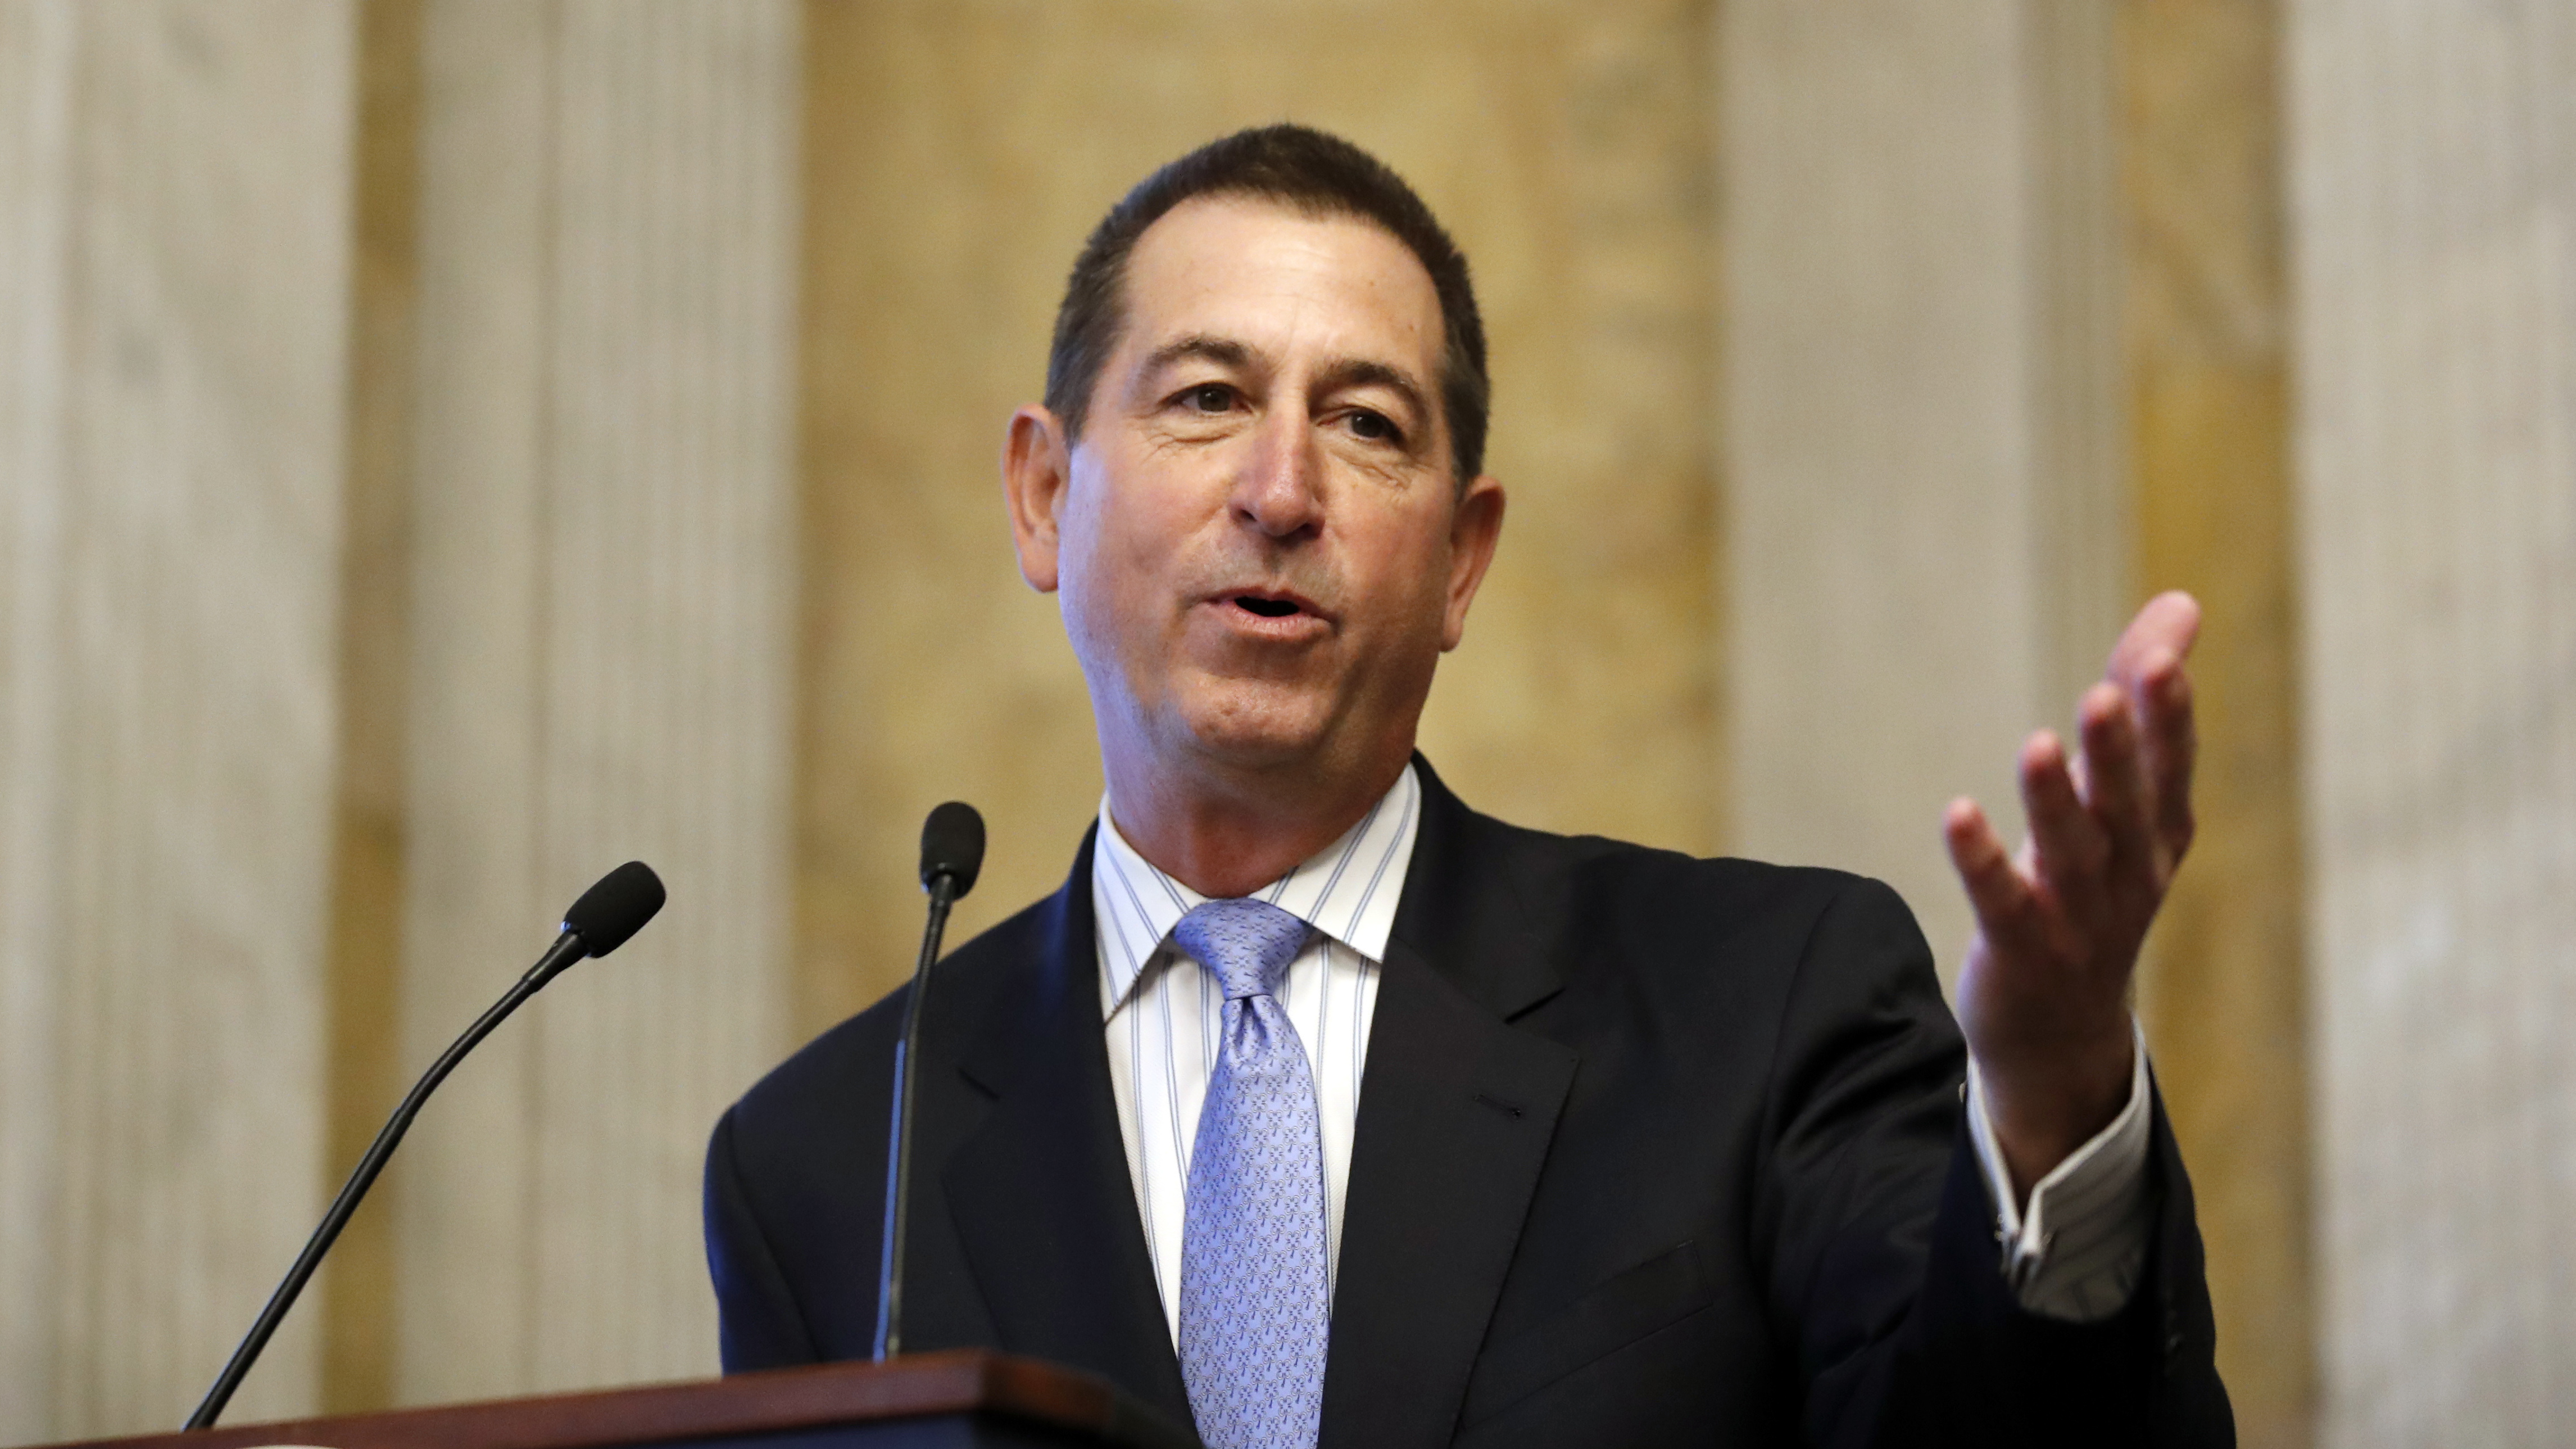 Comptroller of the Currency Joseph Otting, a former bank executive, is testifying before Congress this week about reshaping some banking rules.